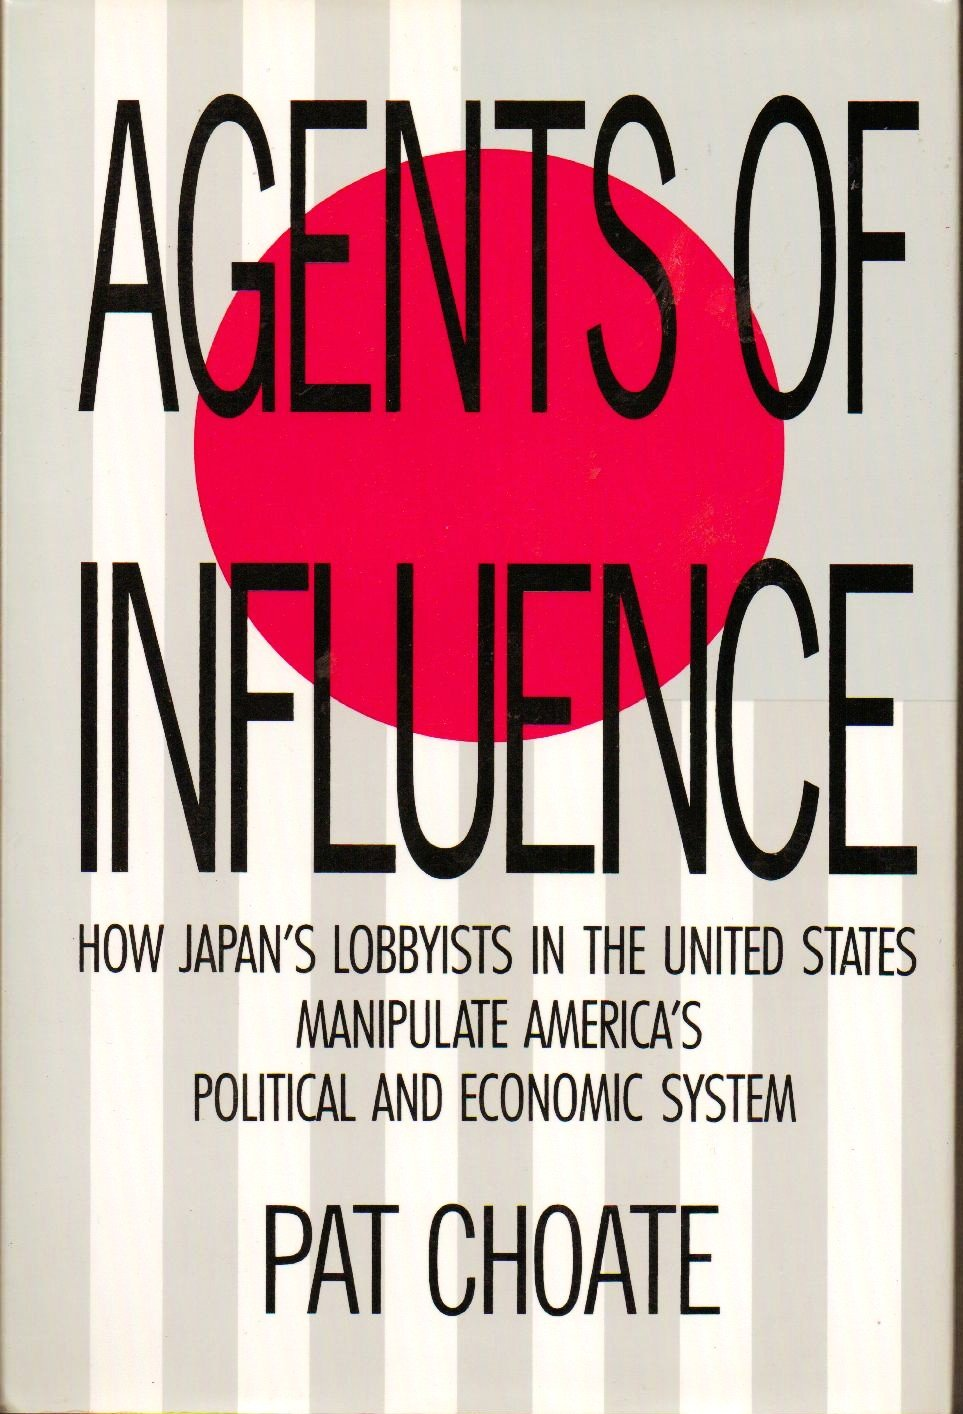 Agents Of Influence by Pat Choate - As New - 1st Edition 0394579011